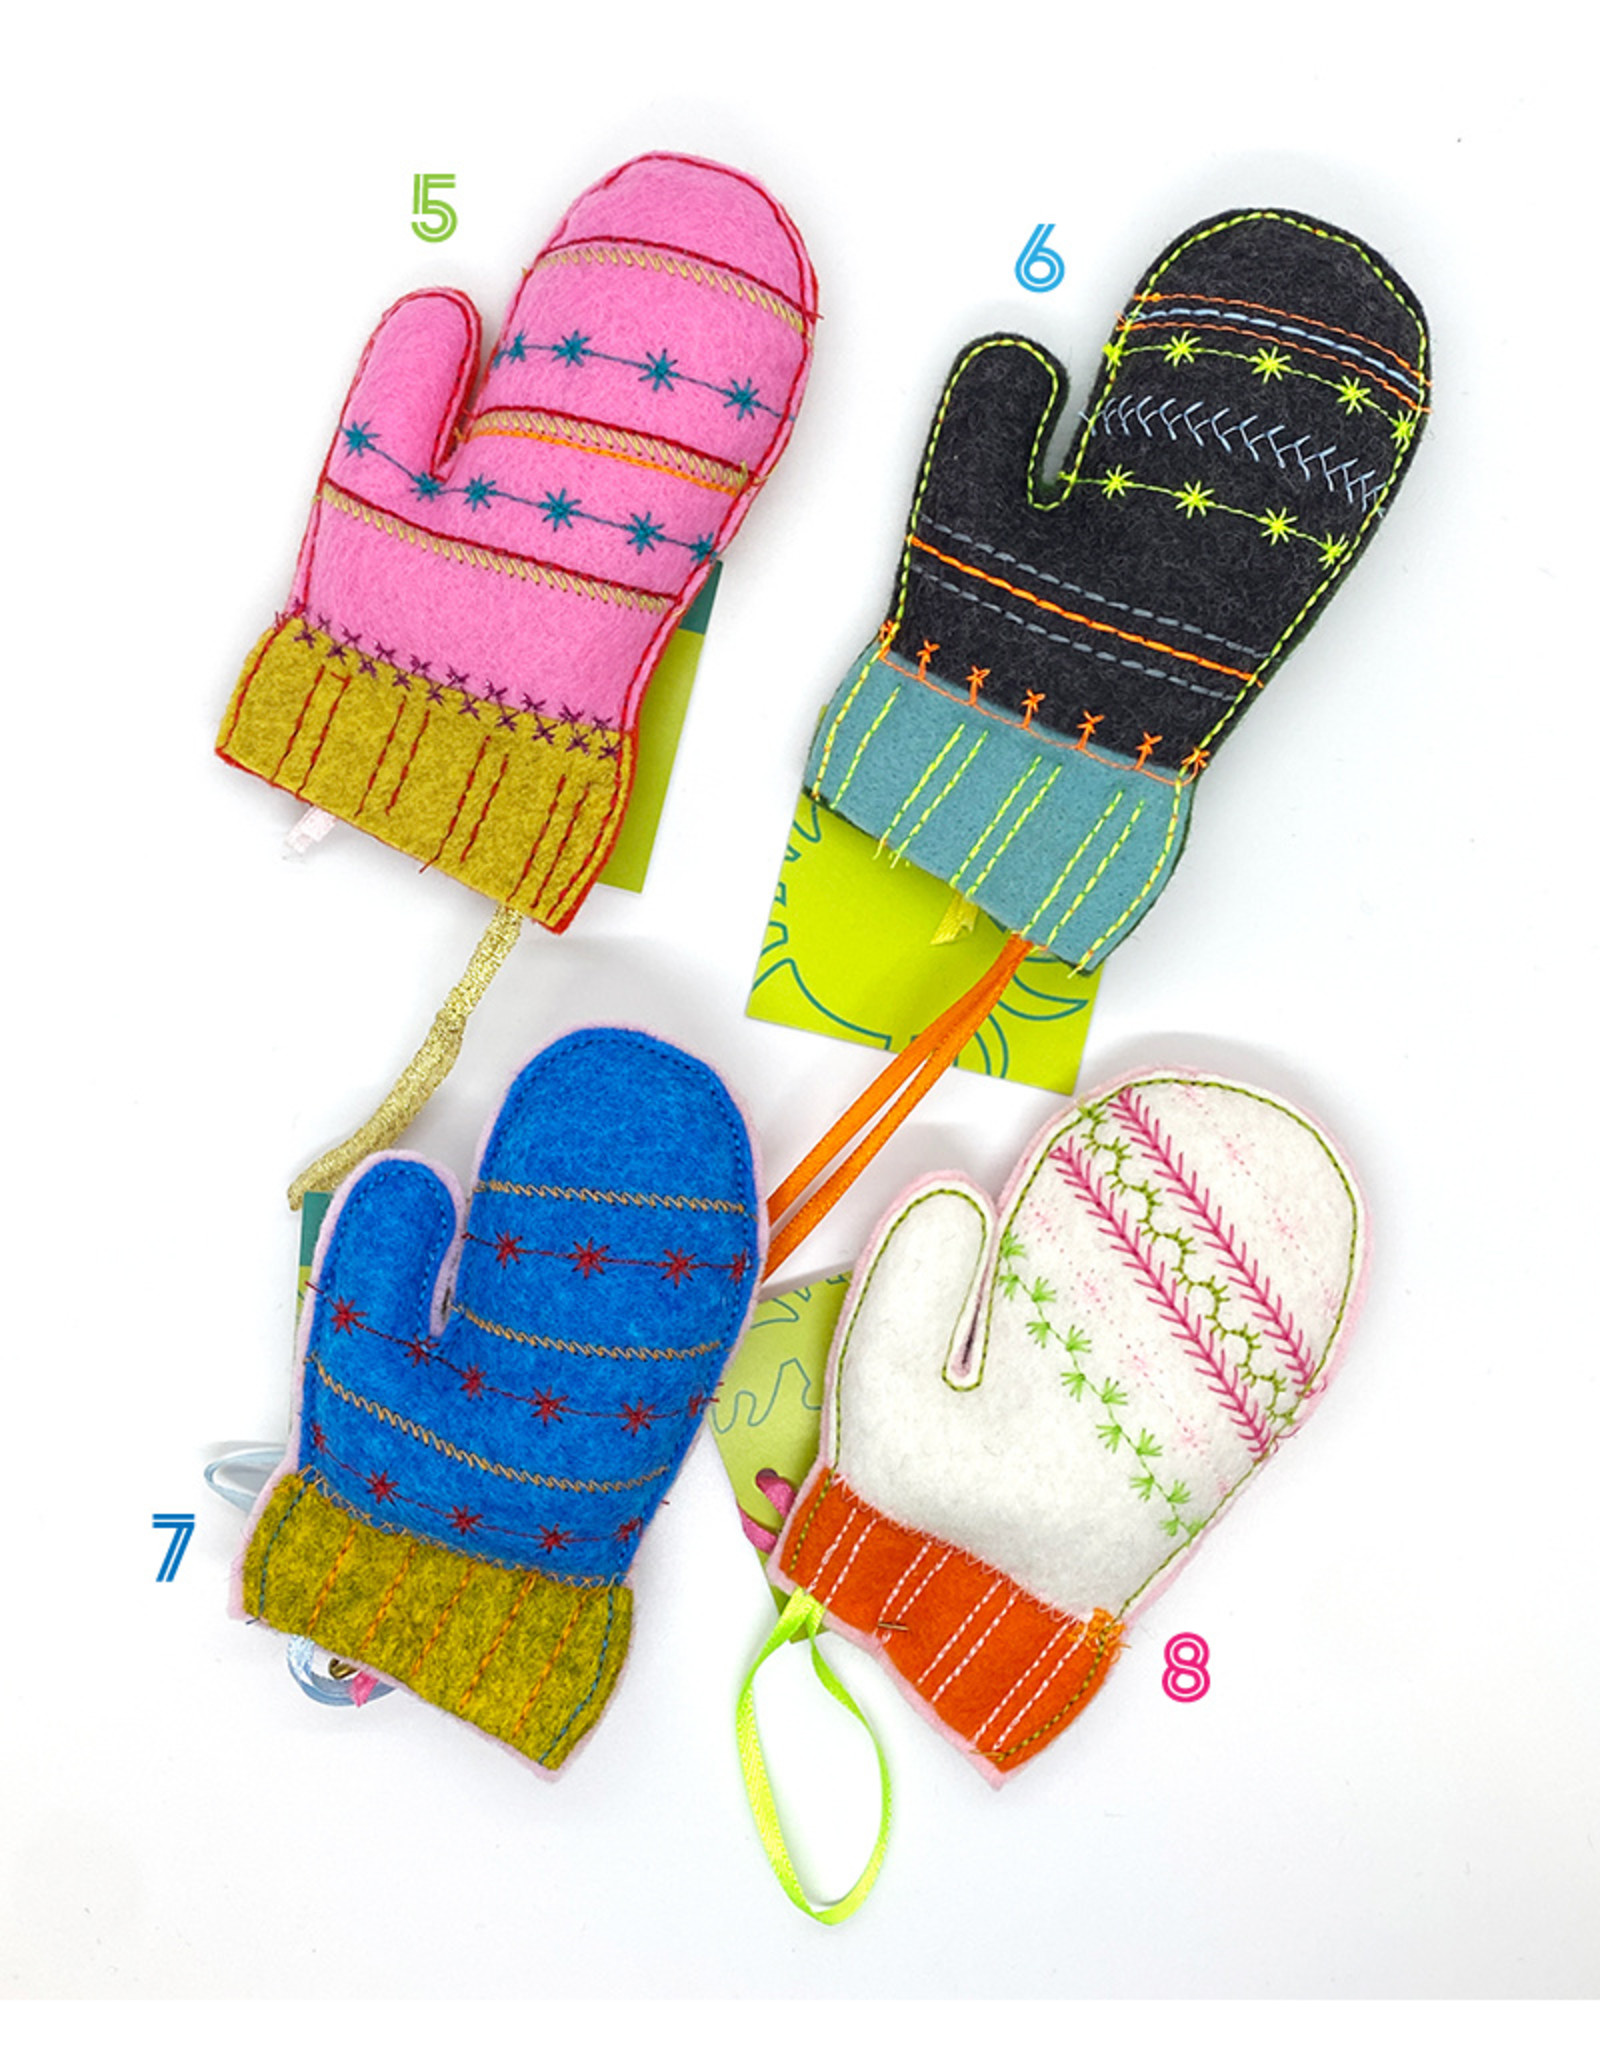 Crabcakes Mitten Ornaments by Crabcakes